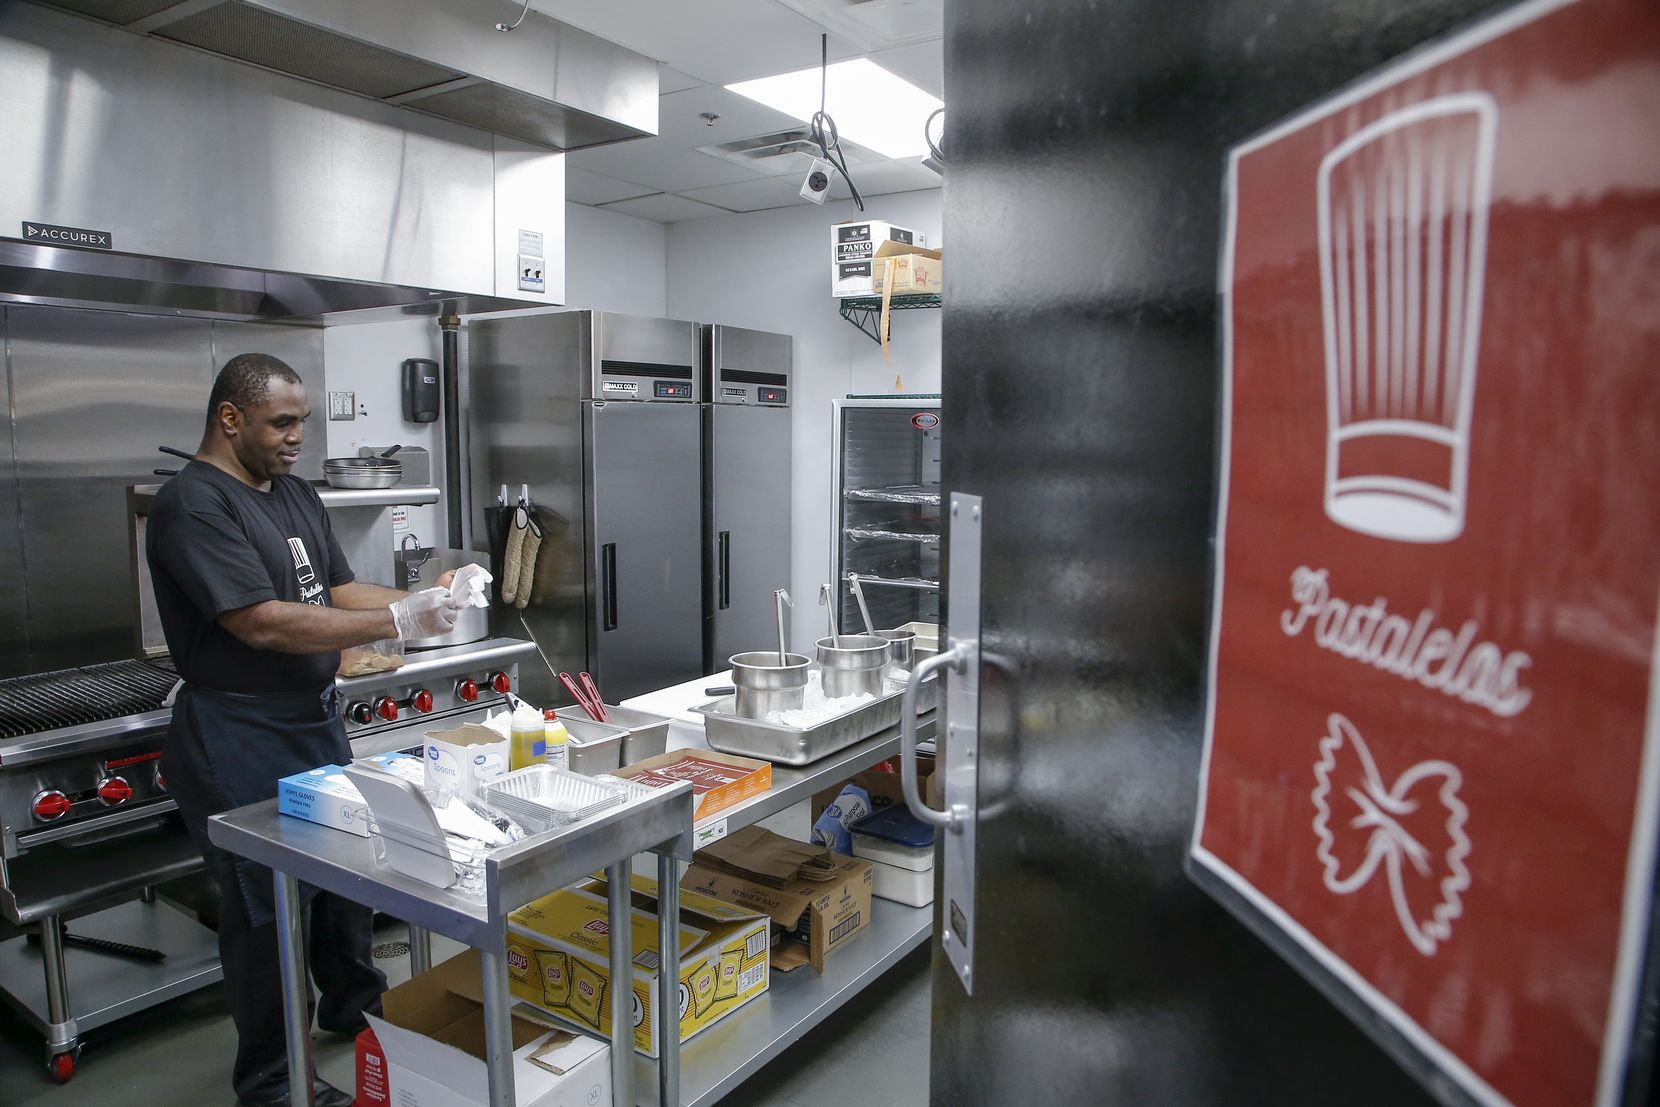 Roger Sackey, owner of Pastalelos, puts on a pair of plastic gloves to prepare a serving of Tomato and Cream Rigatoni at his rented kitchen space at Revolving Kitchen in Garland, Friday, April 30, 2021. Sackey, who has worked in food service for 25 years in New York, started his own business this year.